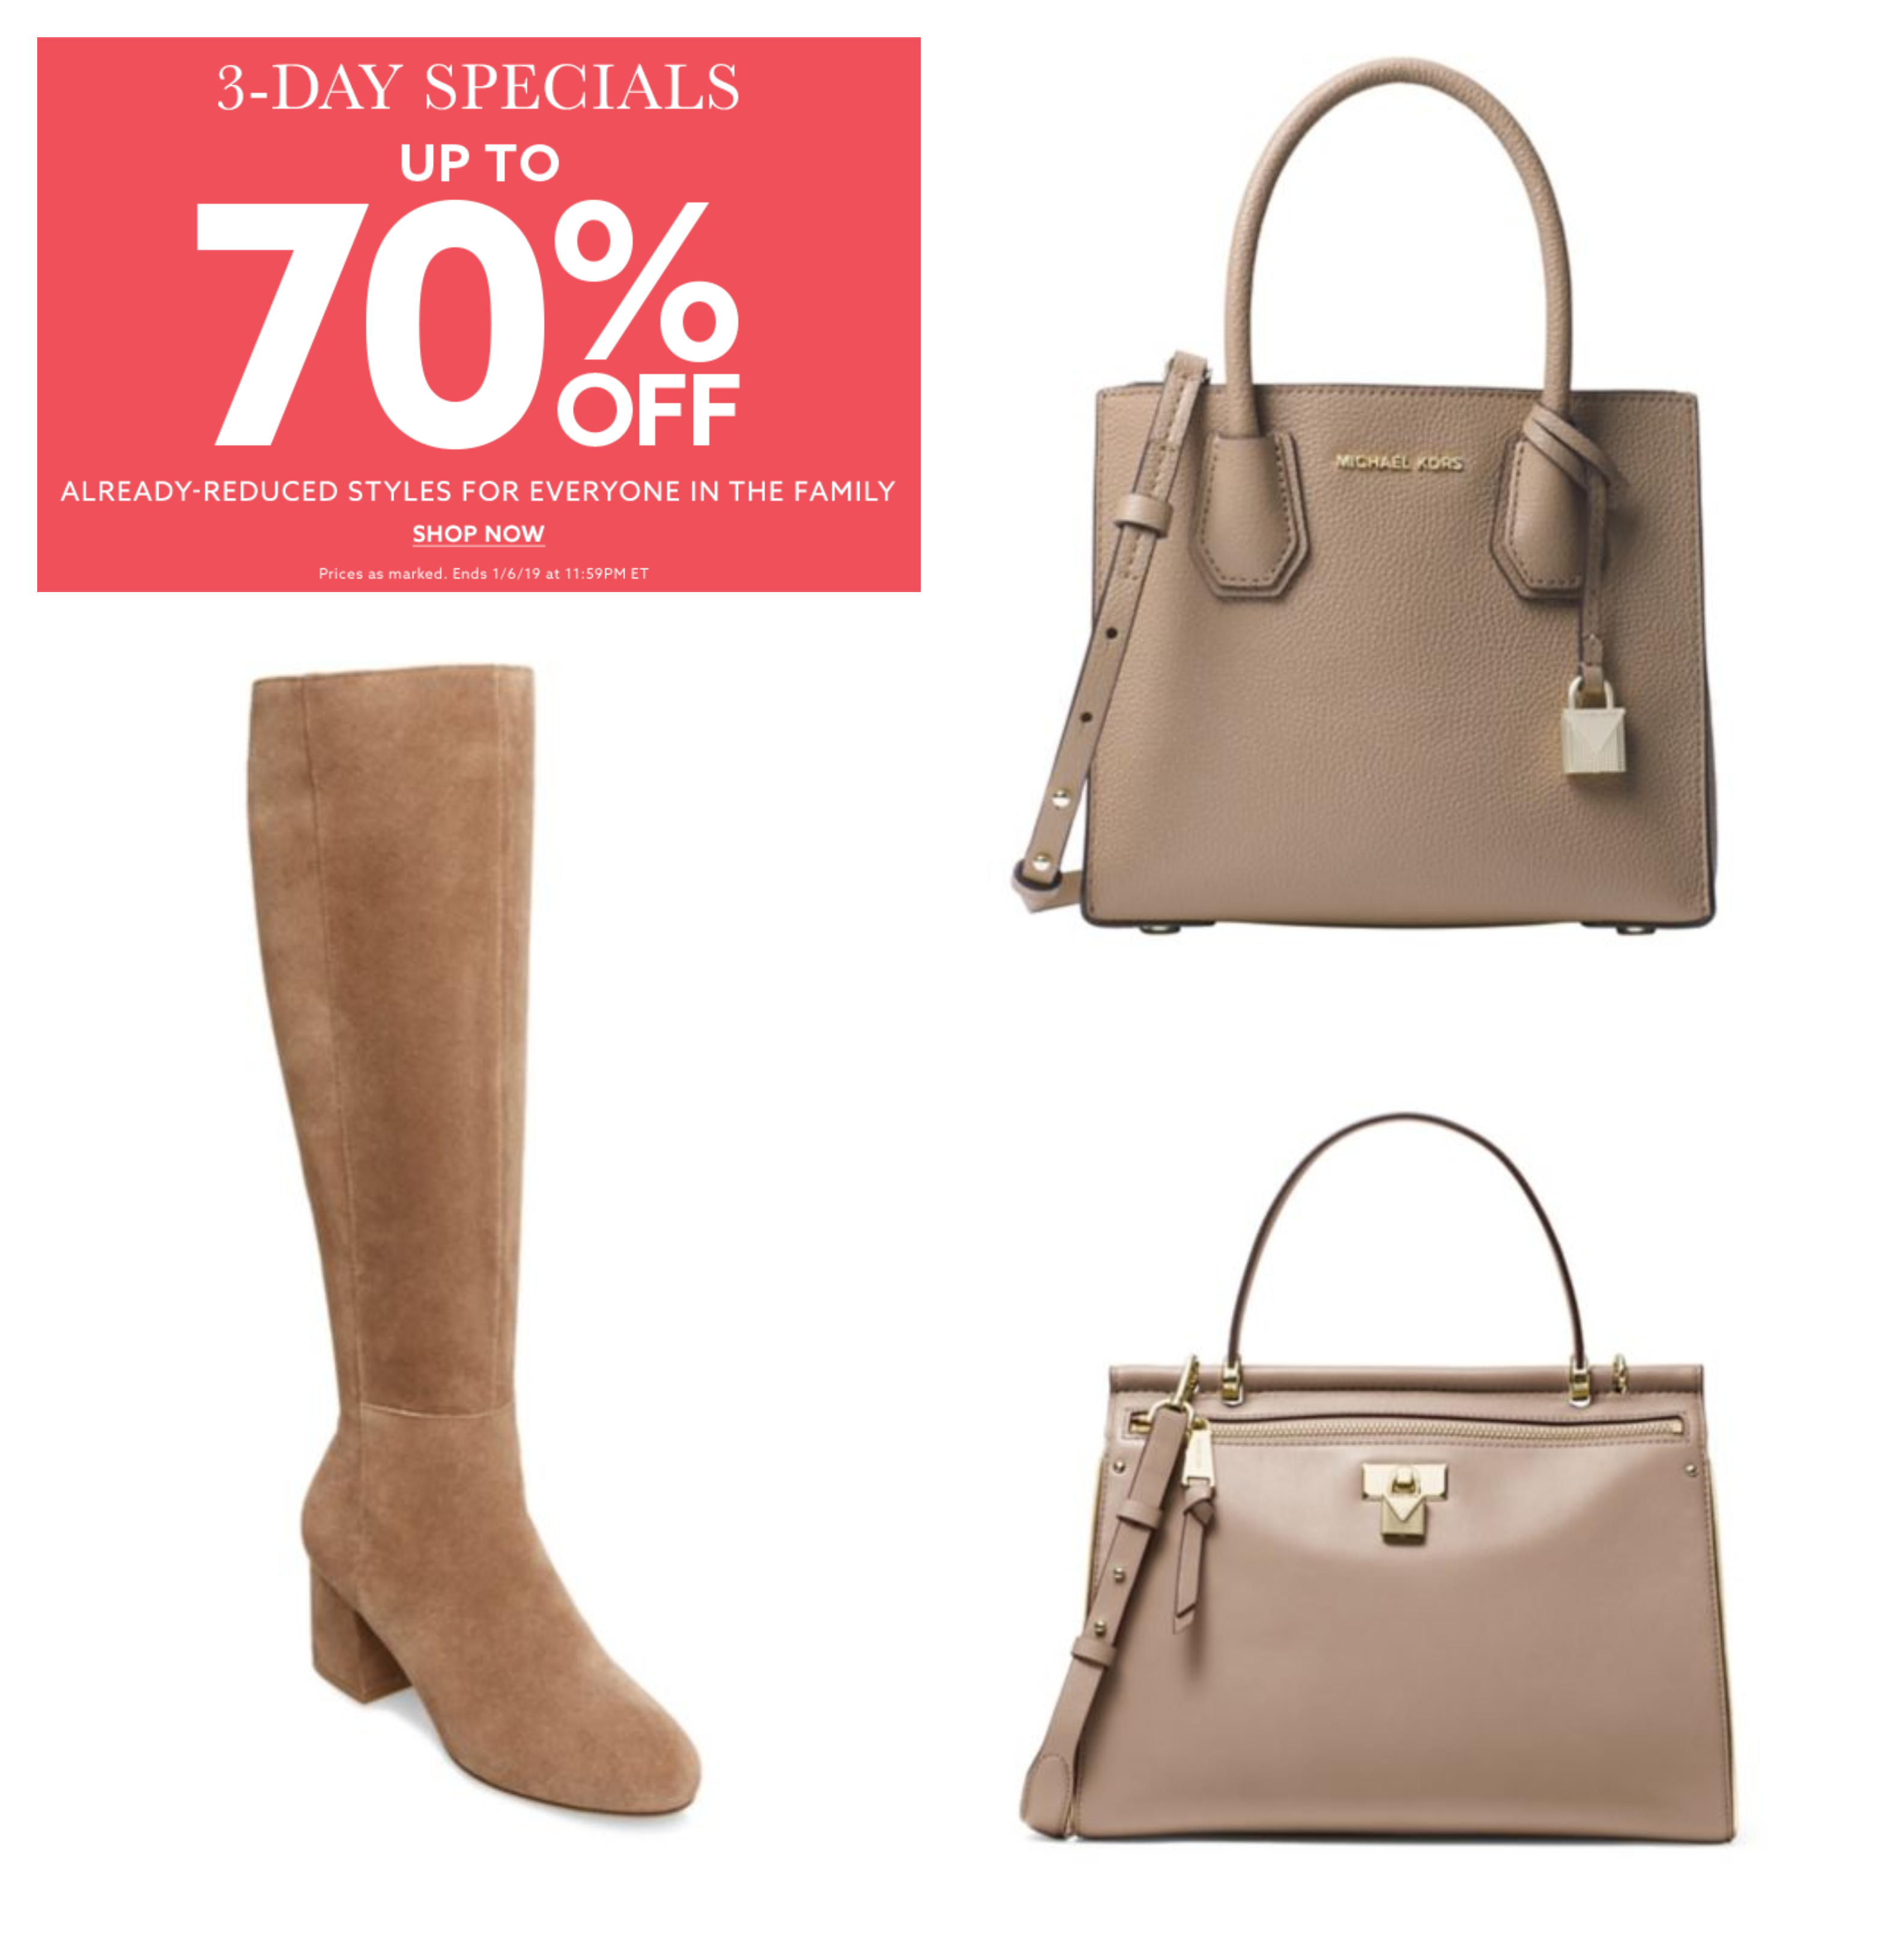 b8f32eb58d0a Lord   Taylor  70% Off Michael Kors Bags and MORE! – Wear It For Less